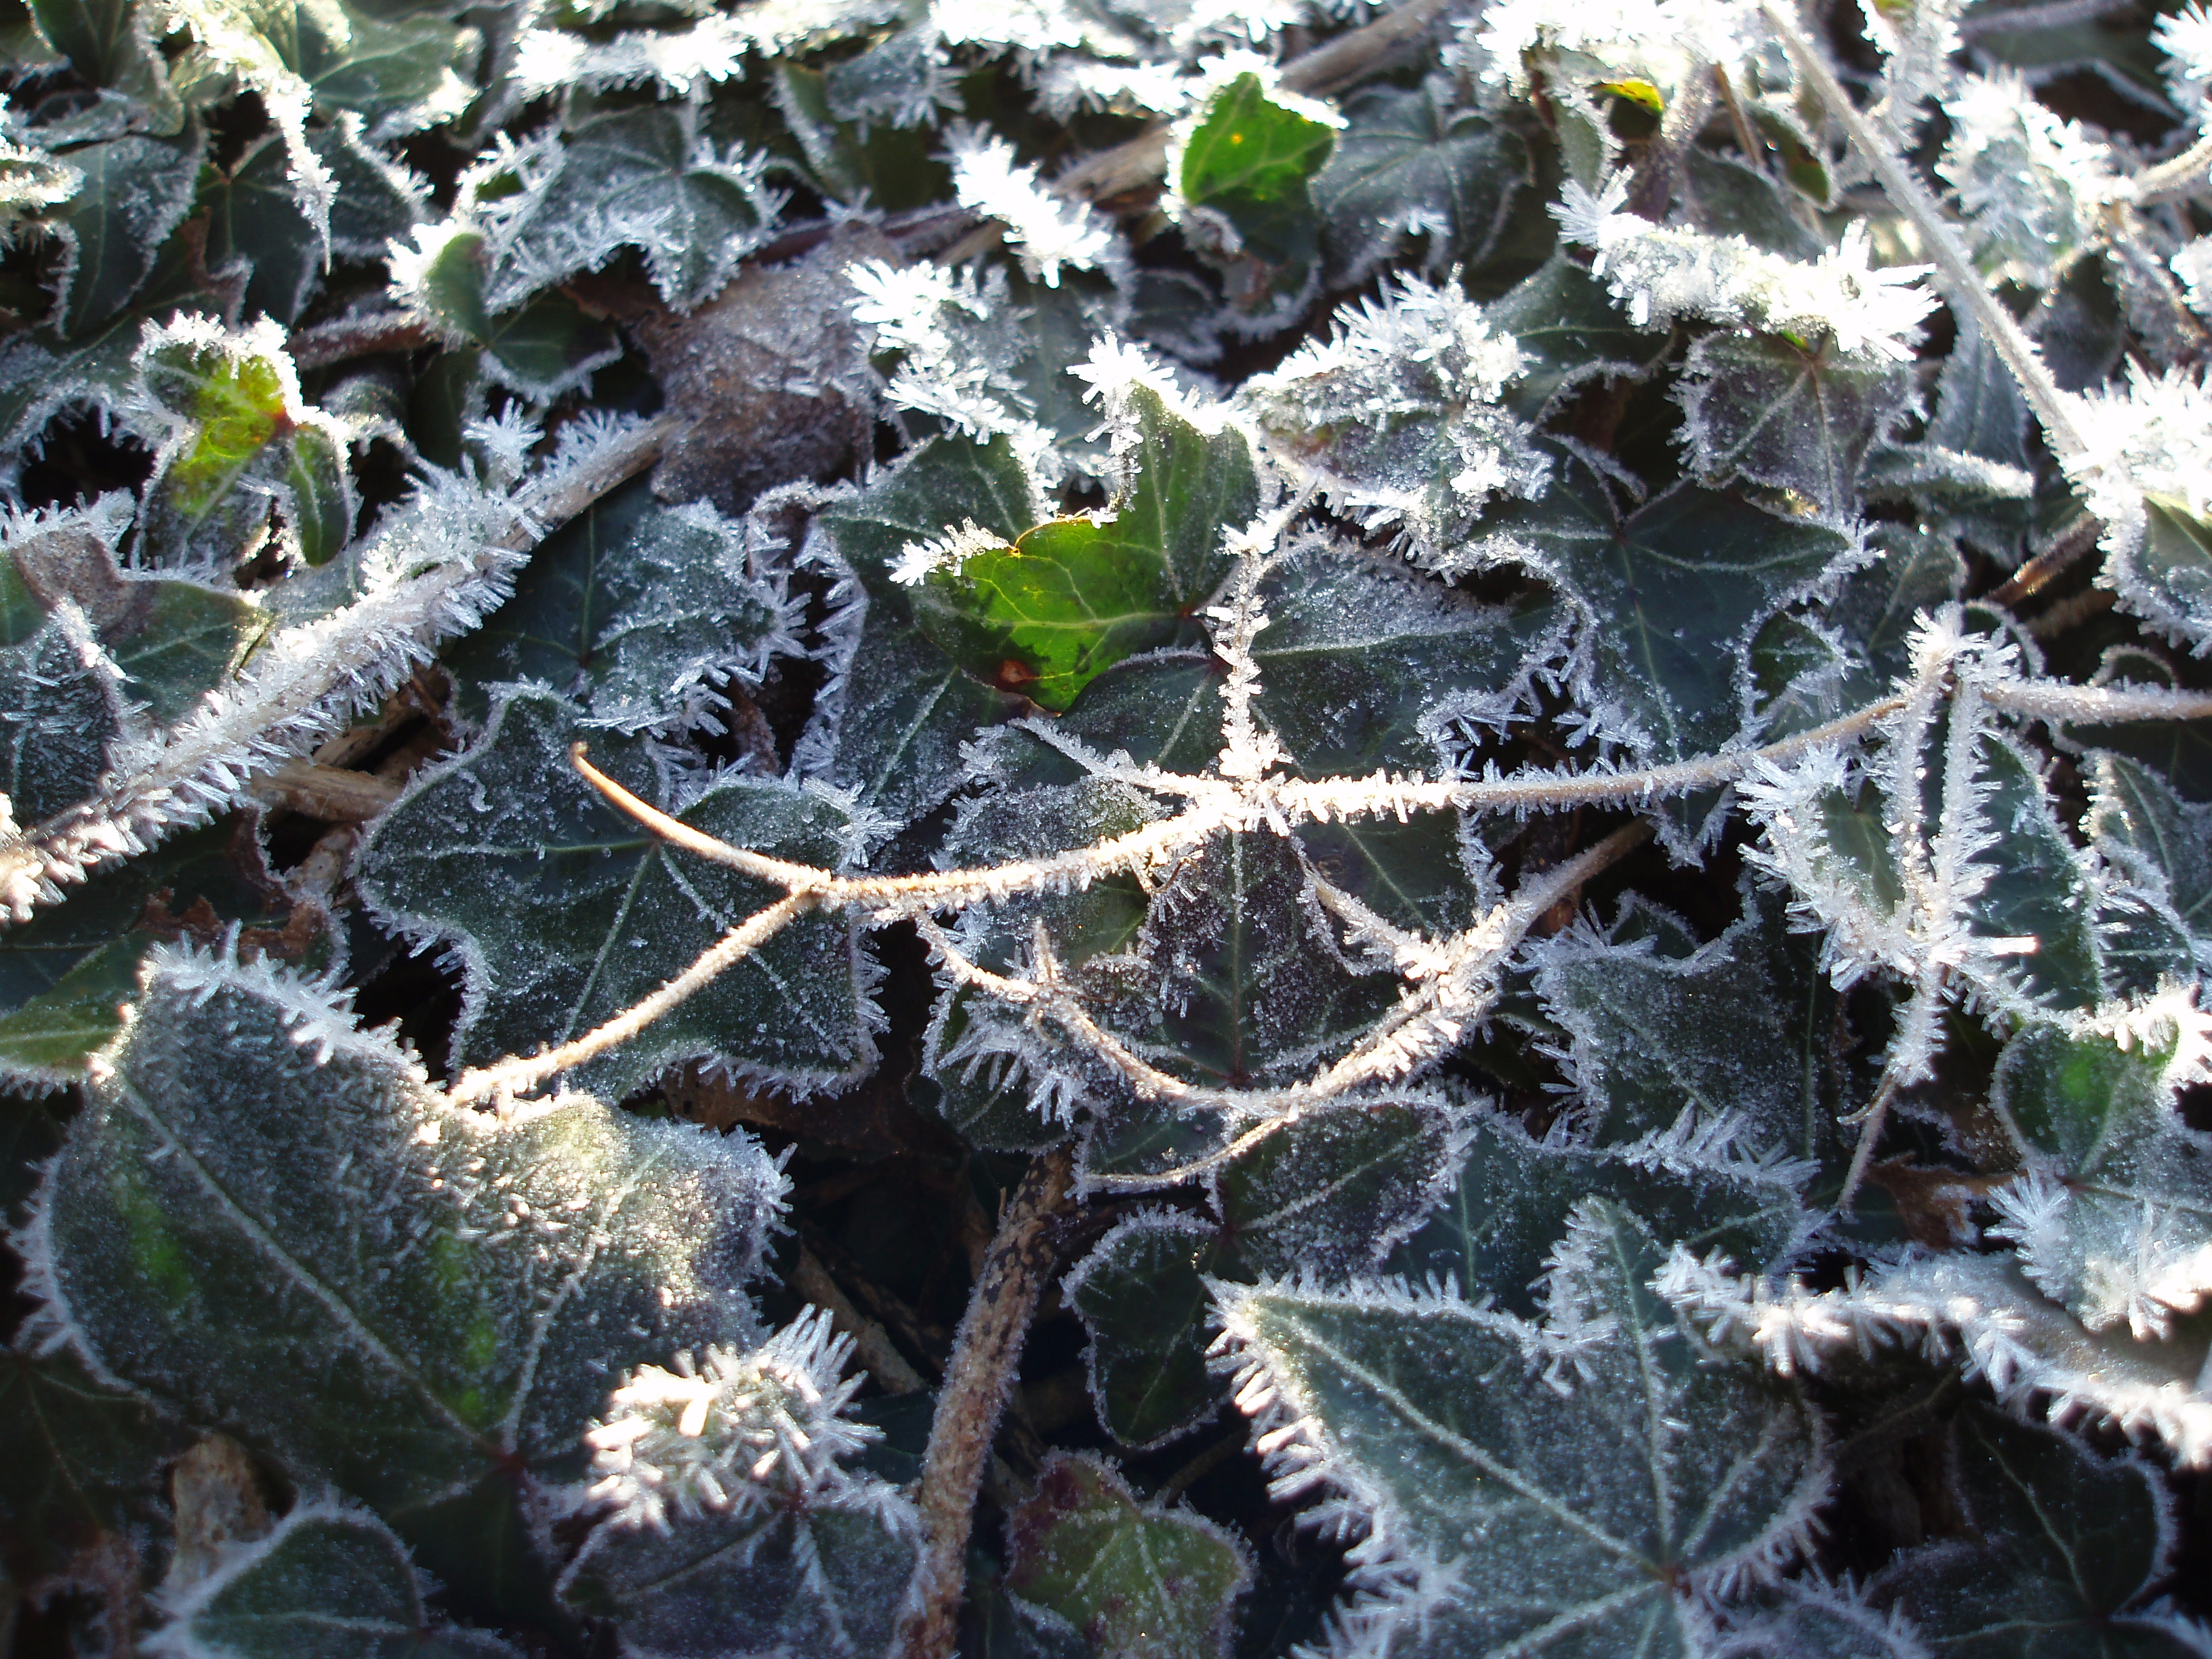 ivy vines covered in winter hoar frost